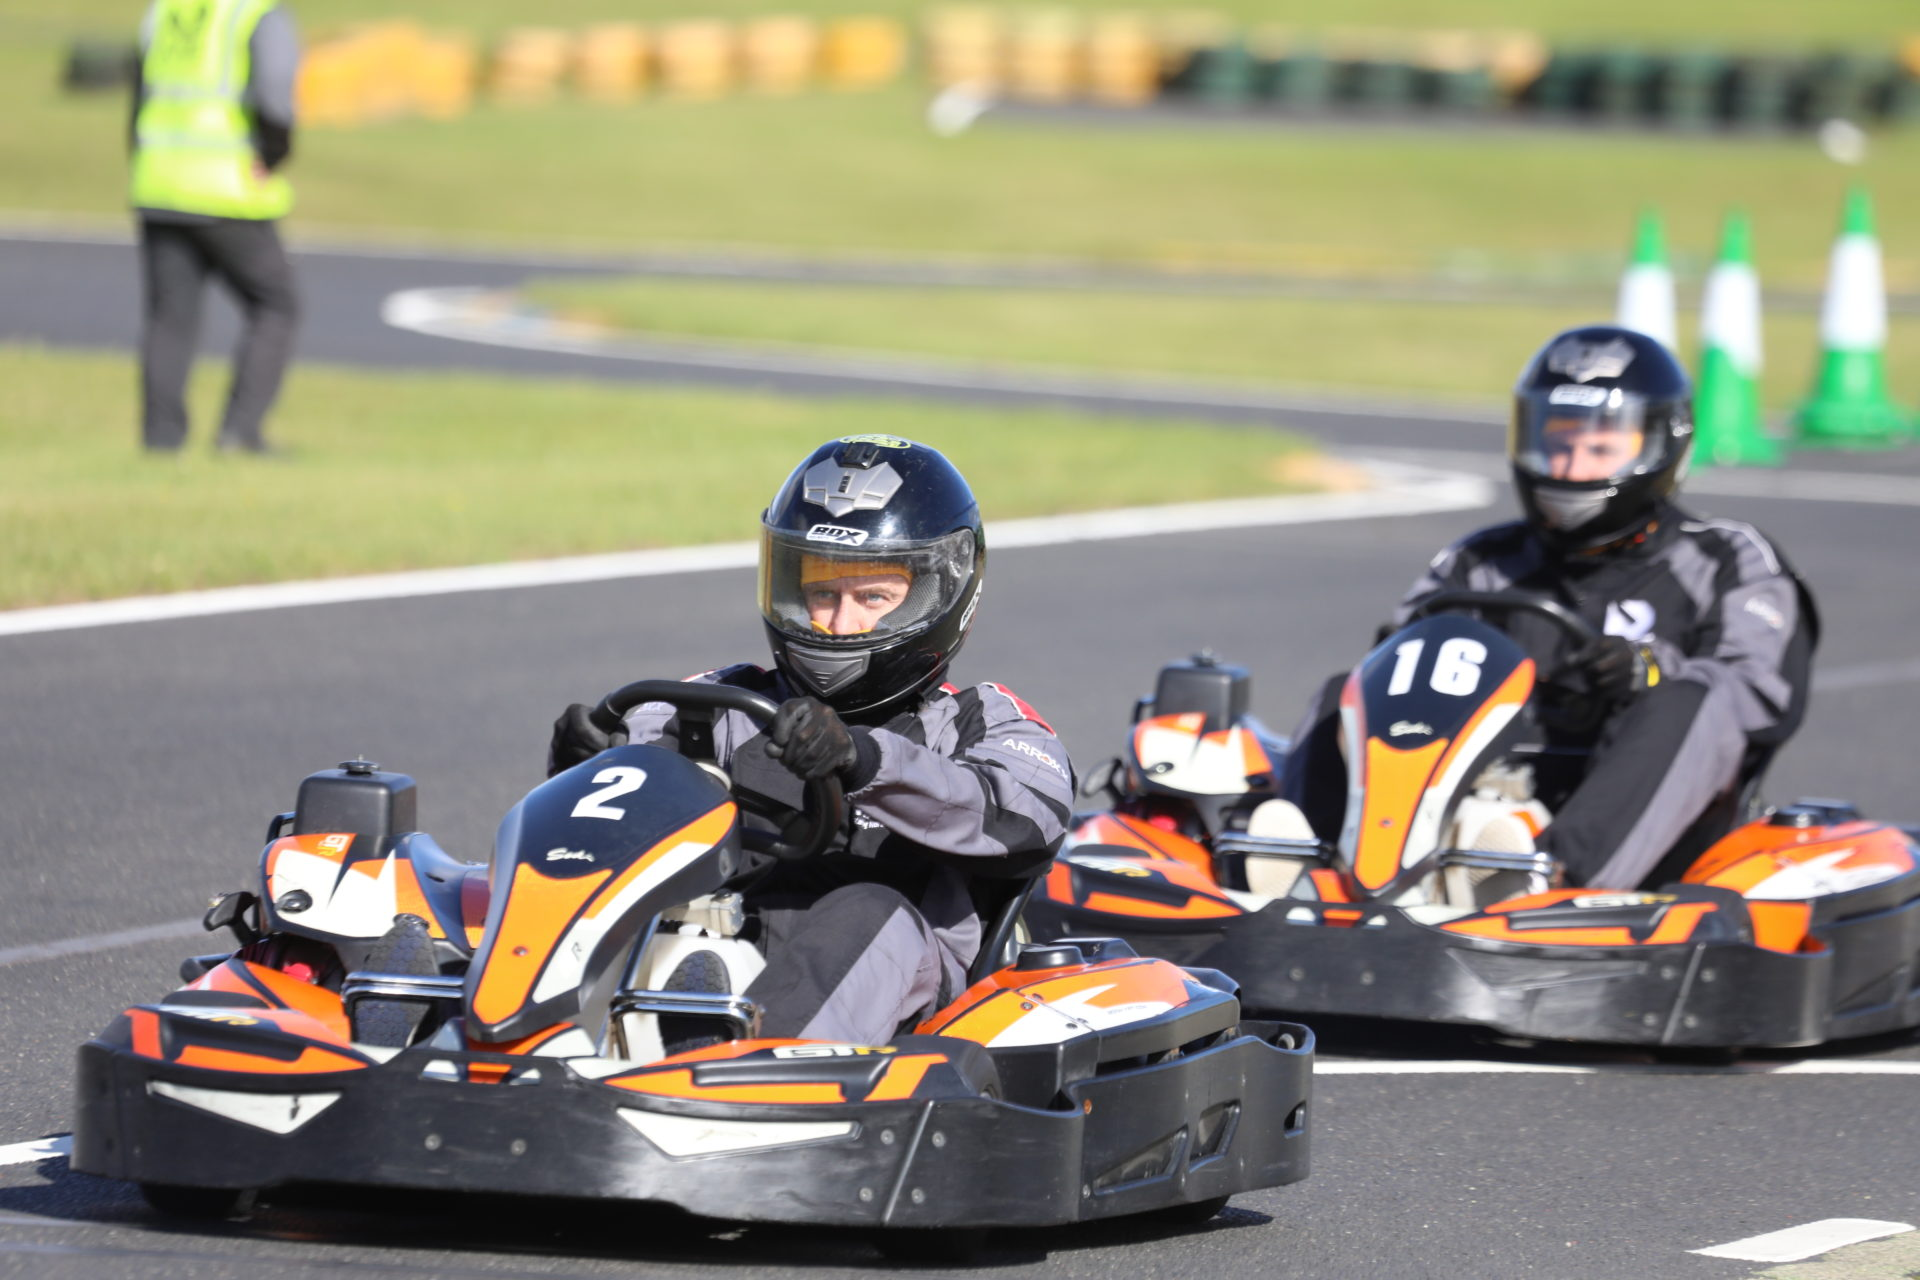 Outdoor Karting Circuit North East | Karting North East